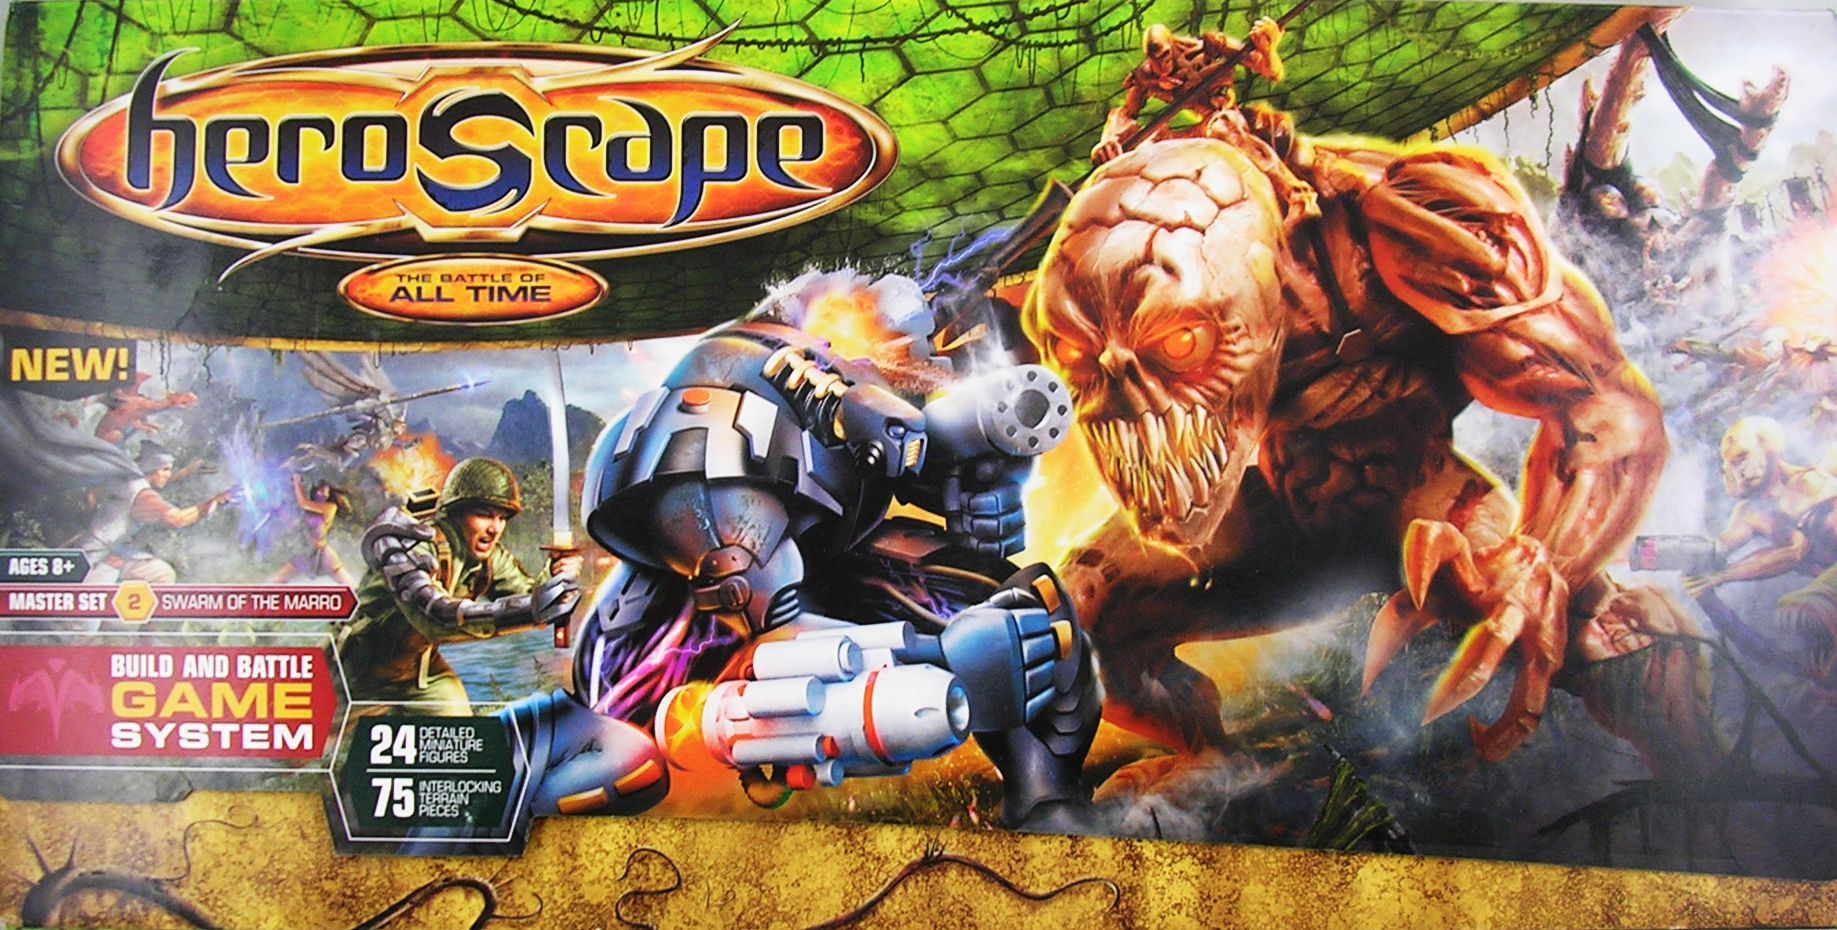 Heroscape Master Set: Swarm of the Marro